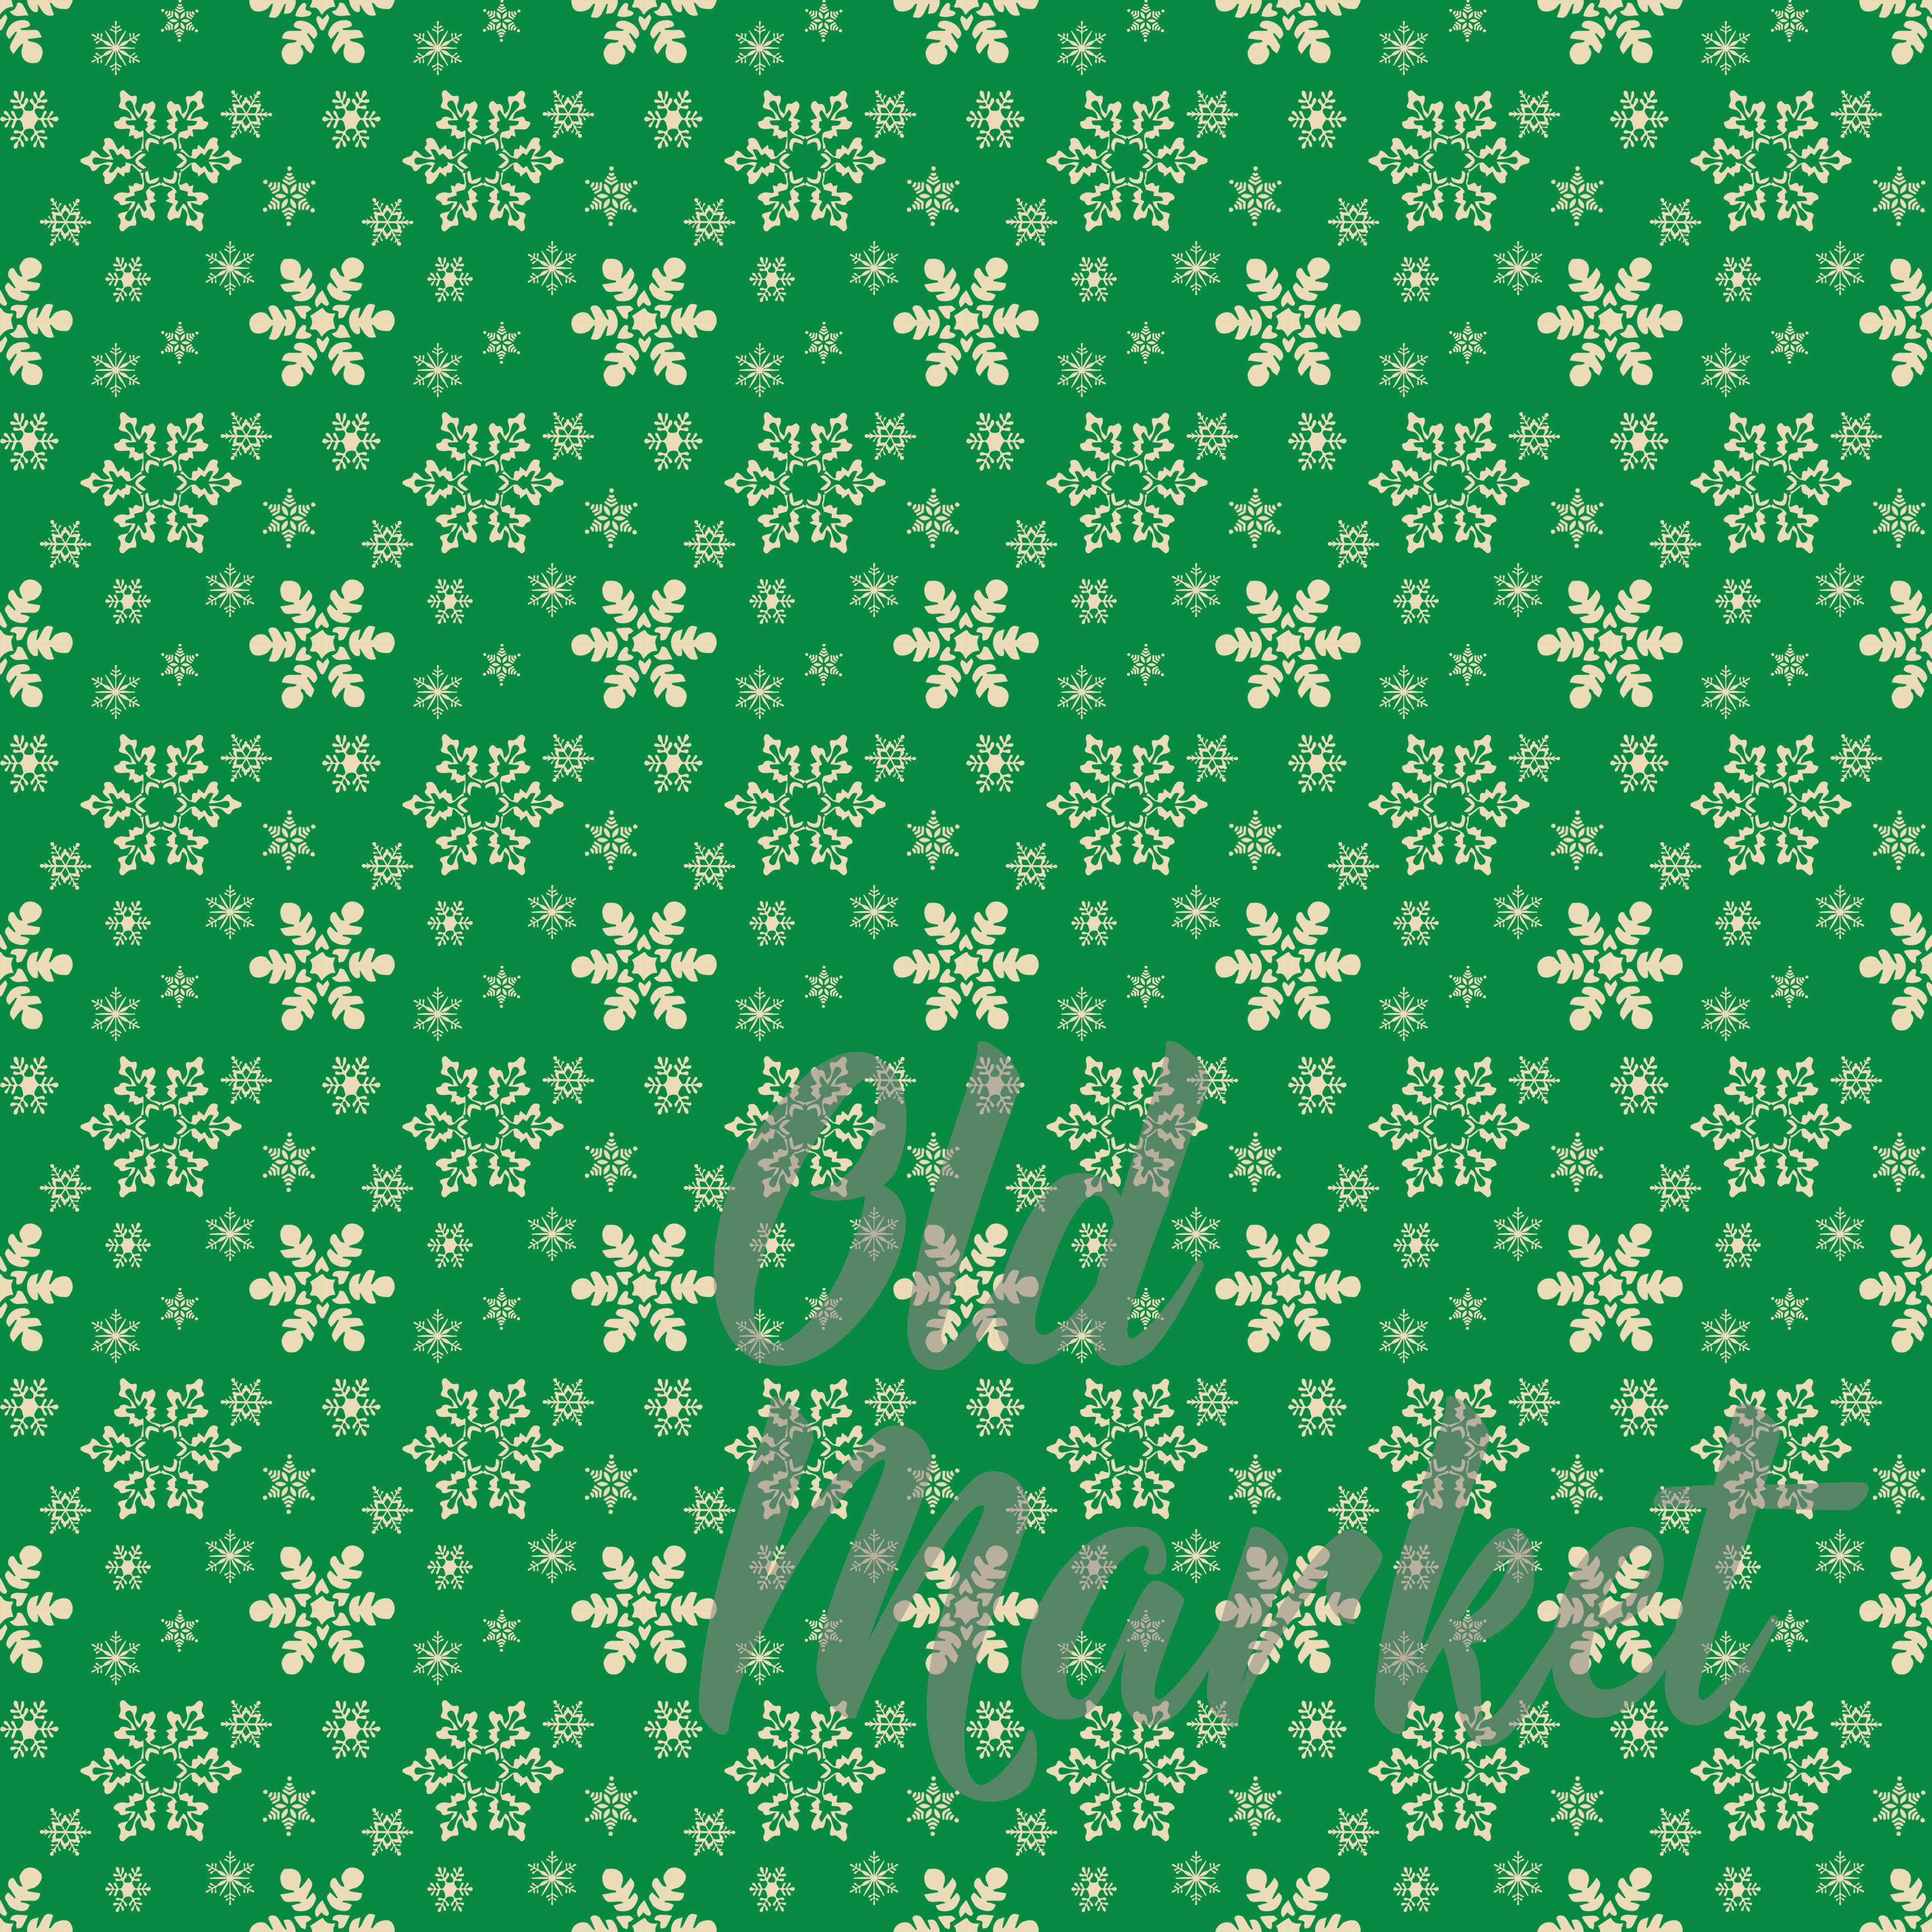 Classic Christmas Digital Paper Graphic By oldmarketdesigns Image 3